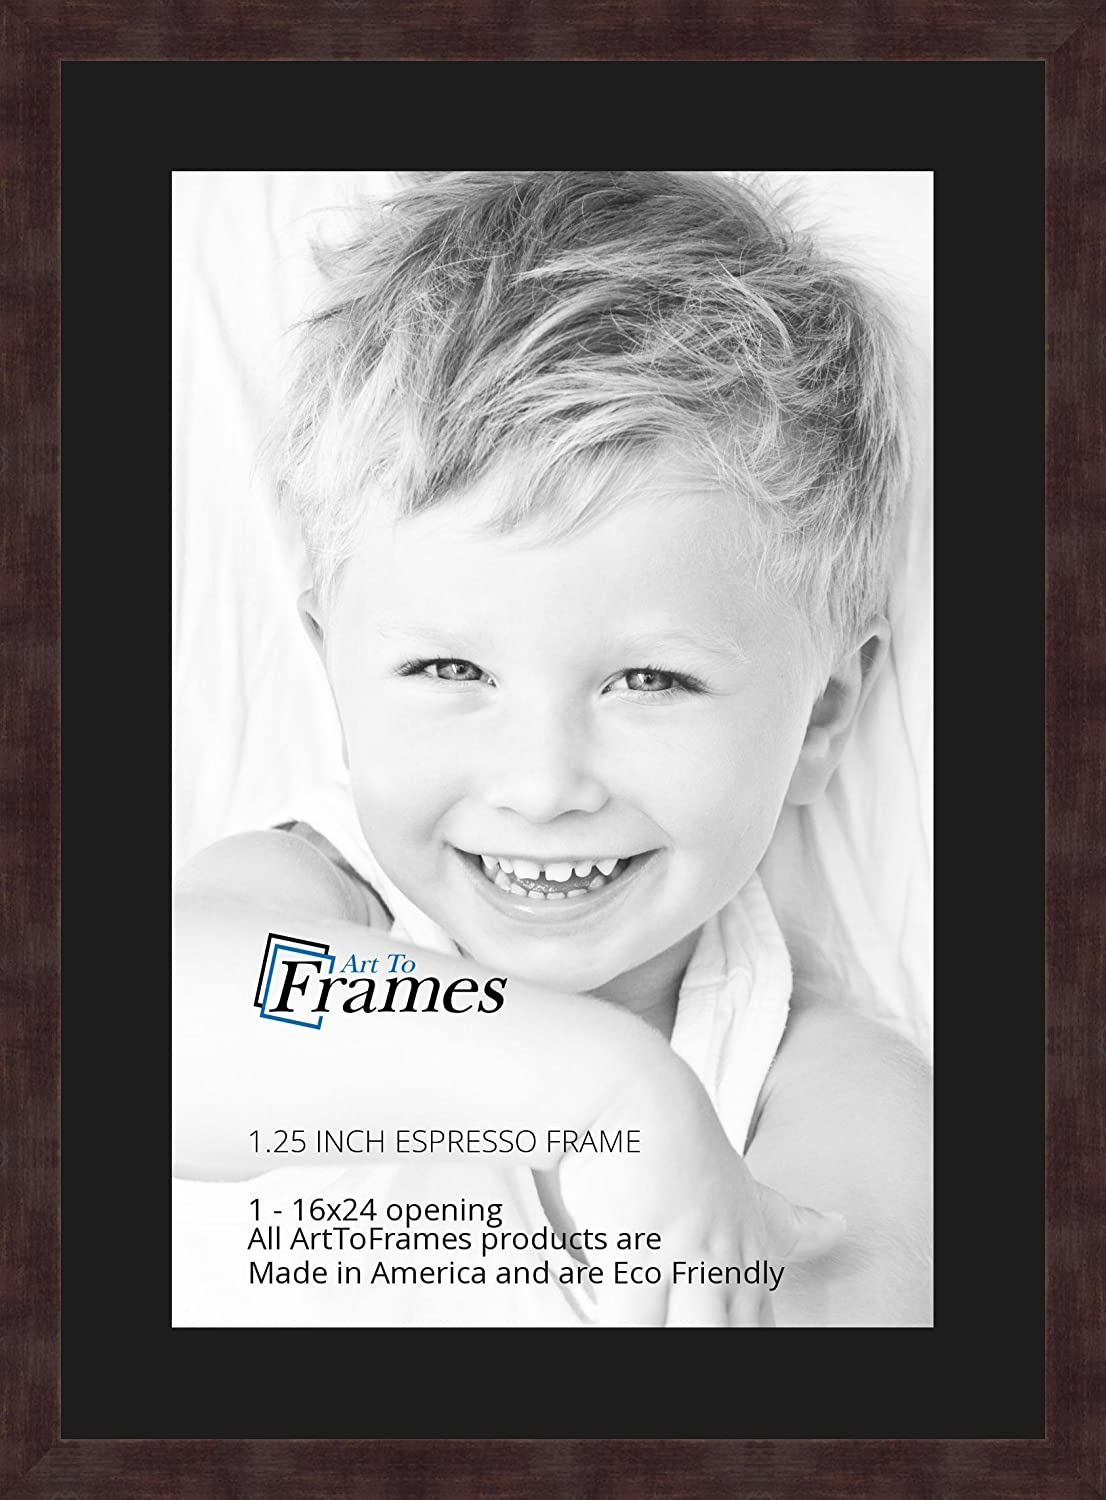 Art to Frames Double-Multimat-652-89//89-FRBW26061 Collage Frame Photo Mat Double Mat with 1-16x24 Openings and Espresso Frame